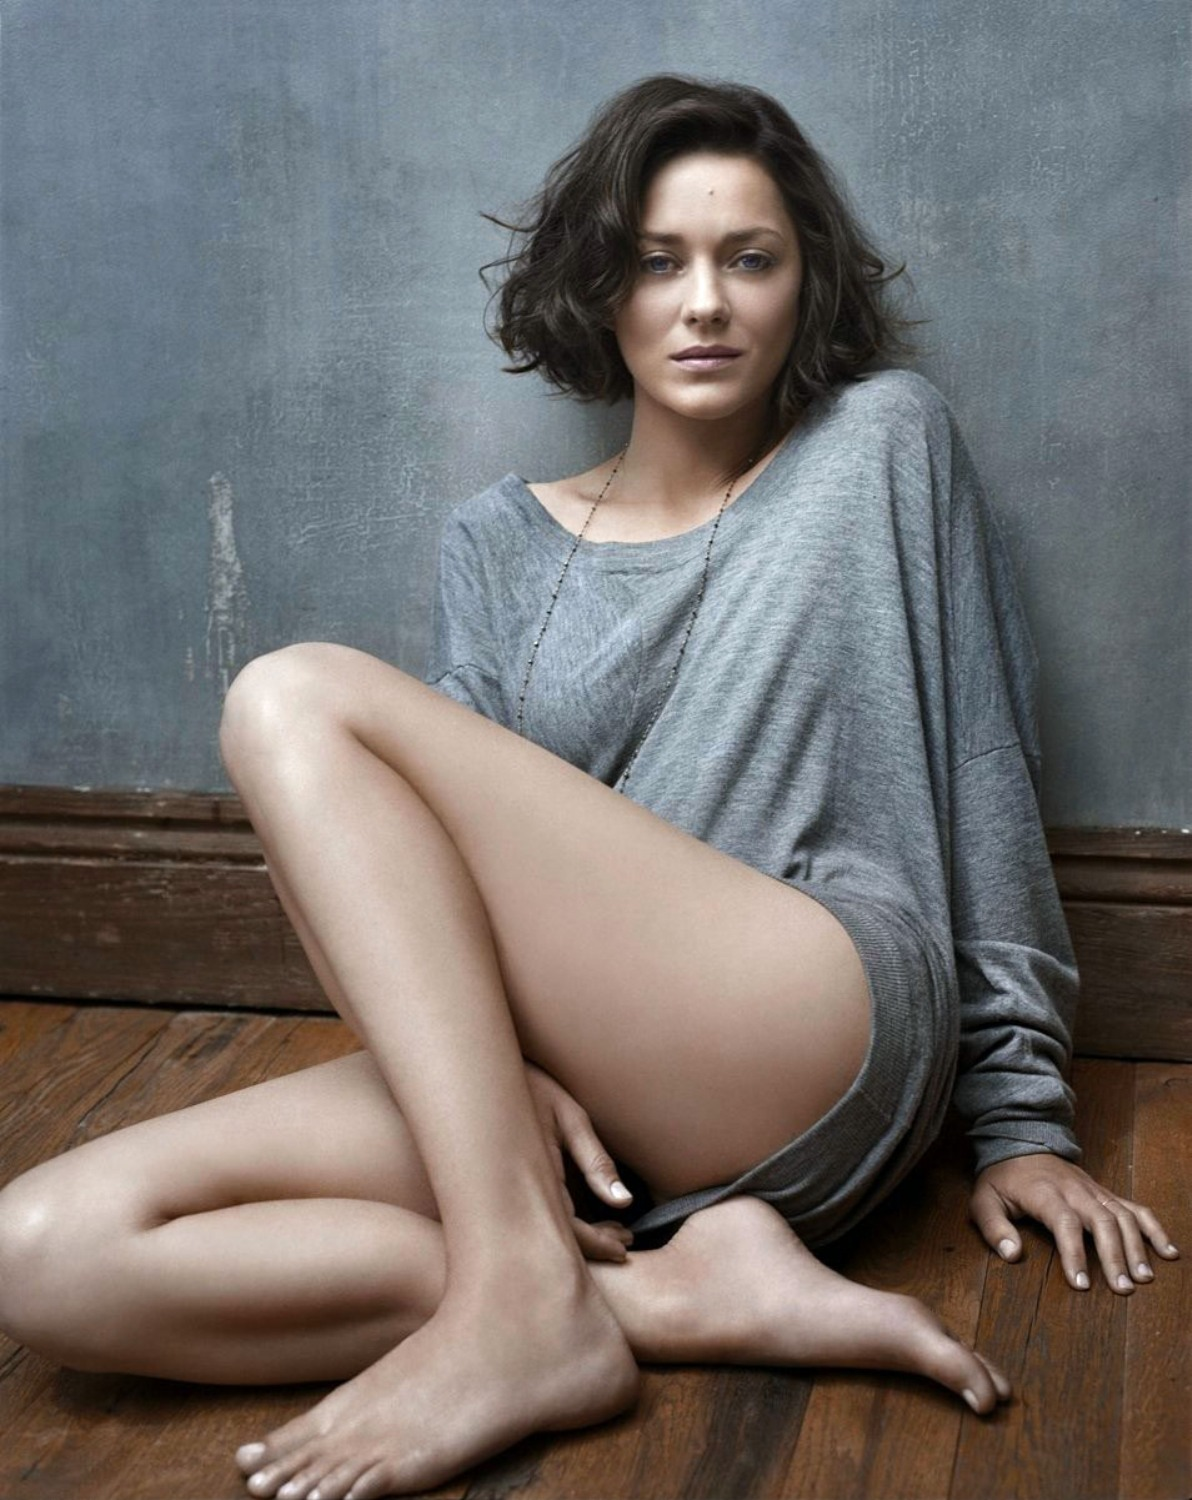 marion-cotillard-body-type-wallpaper-2.jpg